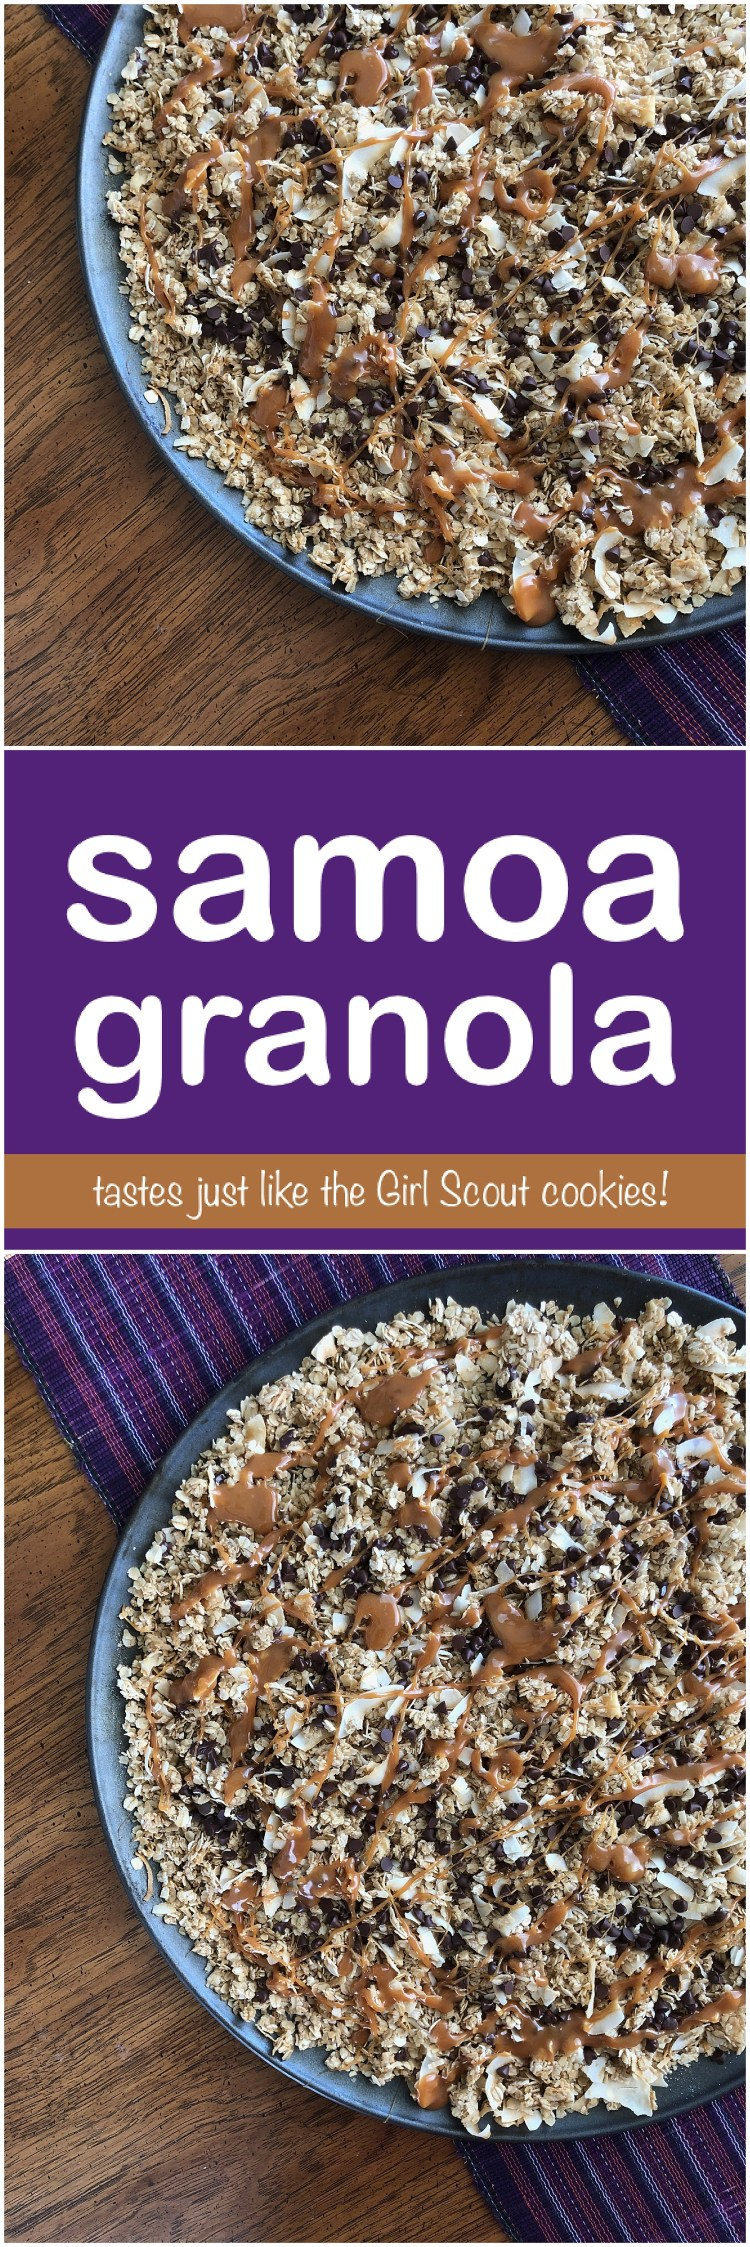 Samoa Granola | Samoa Copycat | Samoa Cookies | Girl Scout Cookies | Easy Recipe | Breakfast | Meal Planning | Breakfast Ideas | After School Snack | Coconut | Caramel | Chocolate | Homemade Granola | Six Clever Sisters